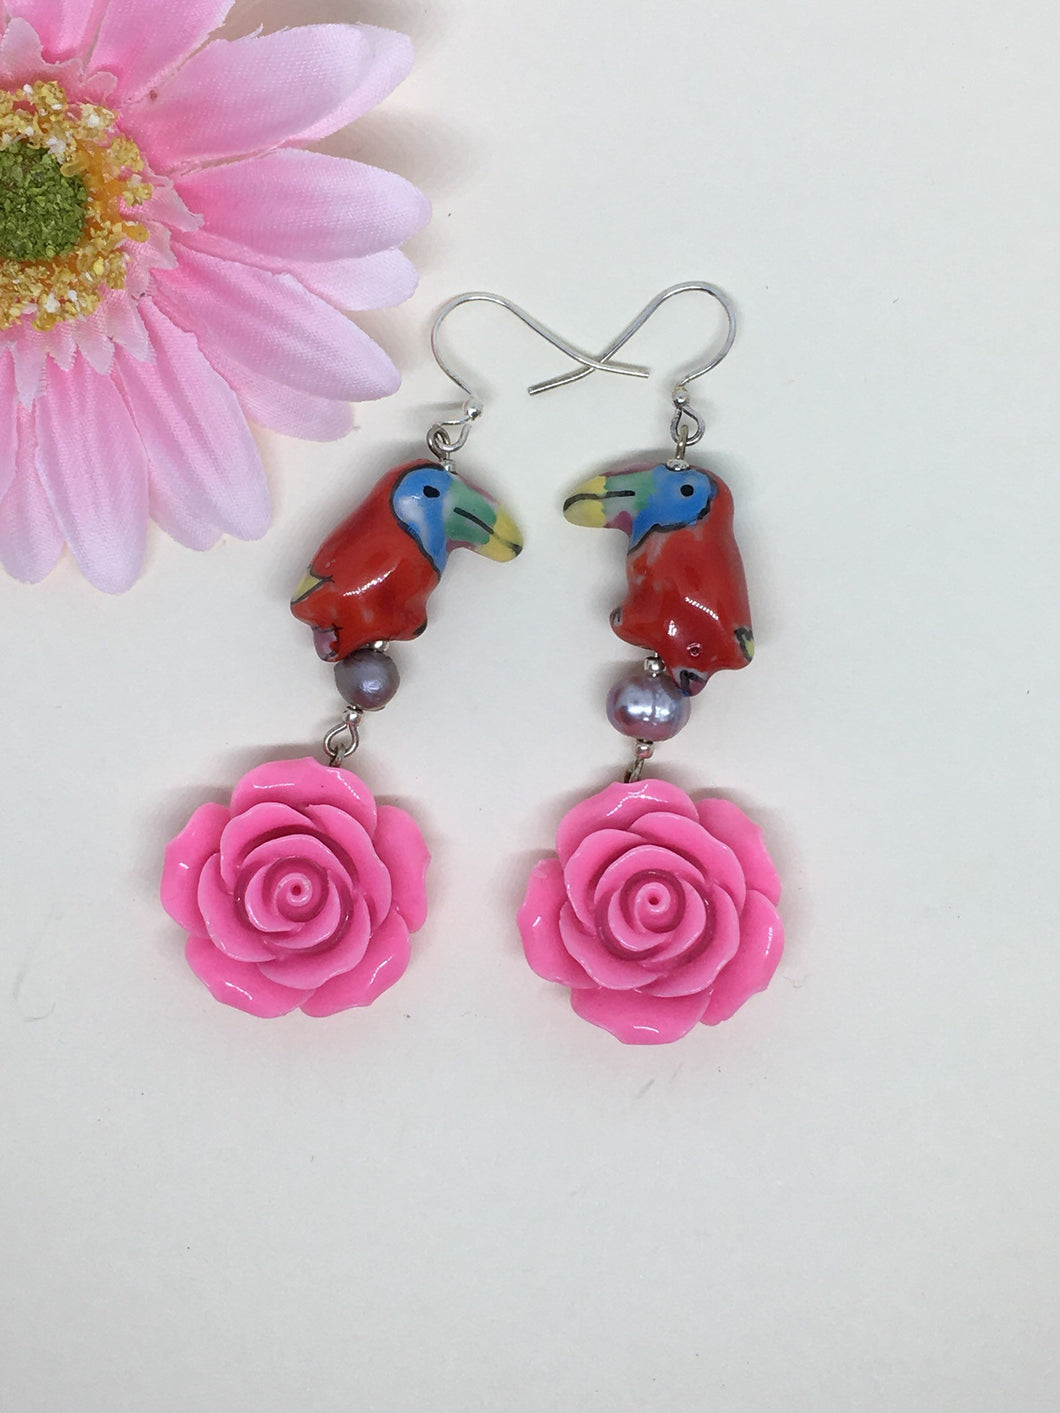 Red Rose earring - Ceramic Parrot on Freshwater Pearl above pink Rose earring.